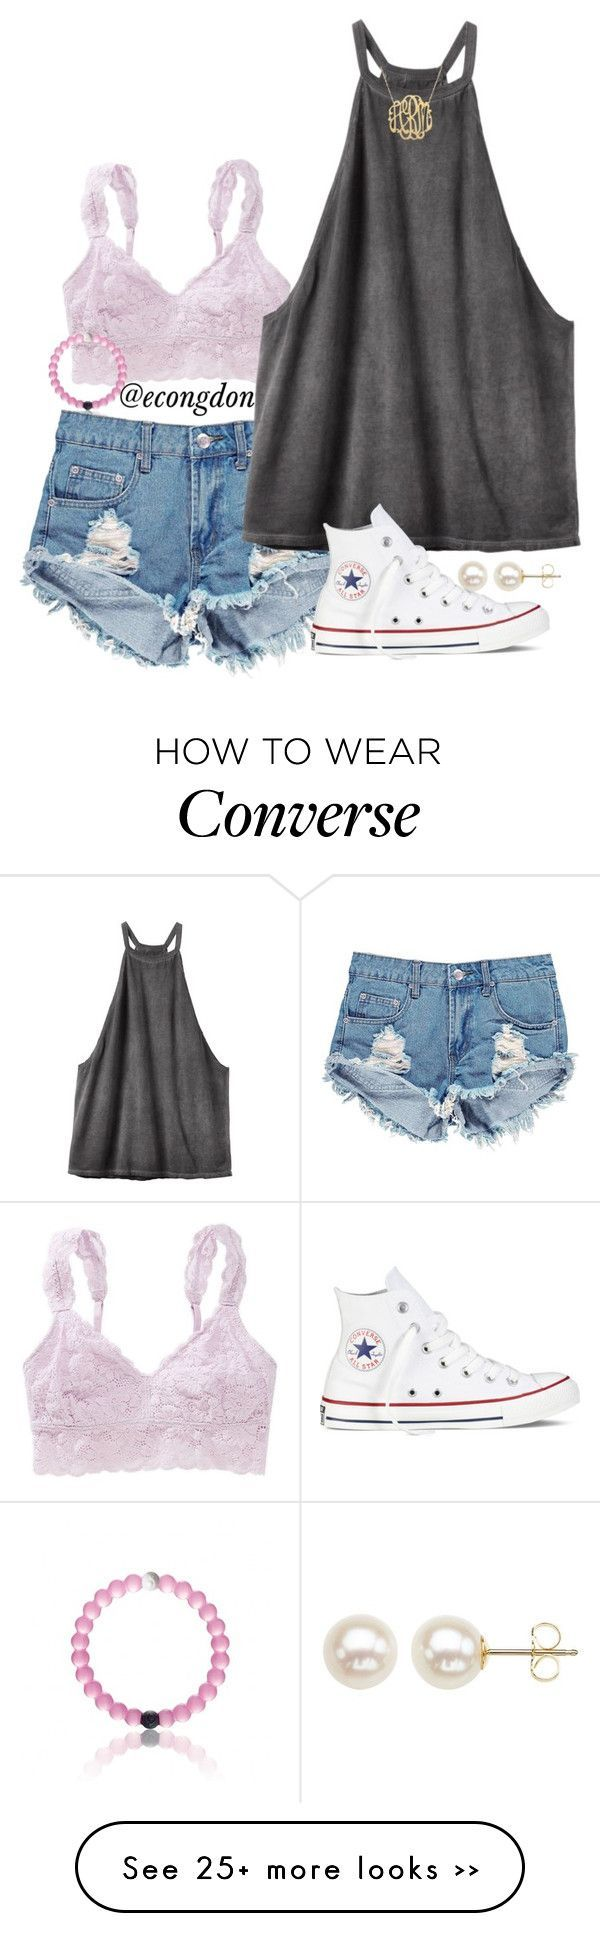 day 14 of 365 happy days by econgdon on Polyvore featuring мода, Aerie, Honora, Boohoo, RVCA, Converse и 365happydays